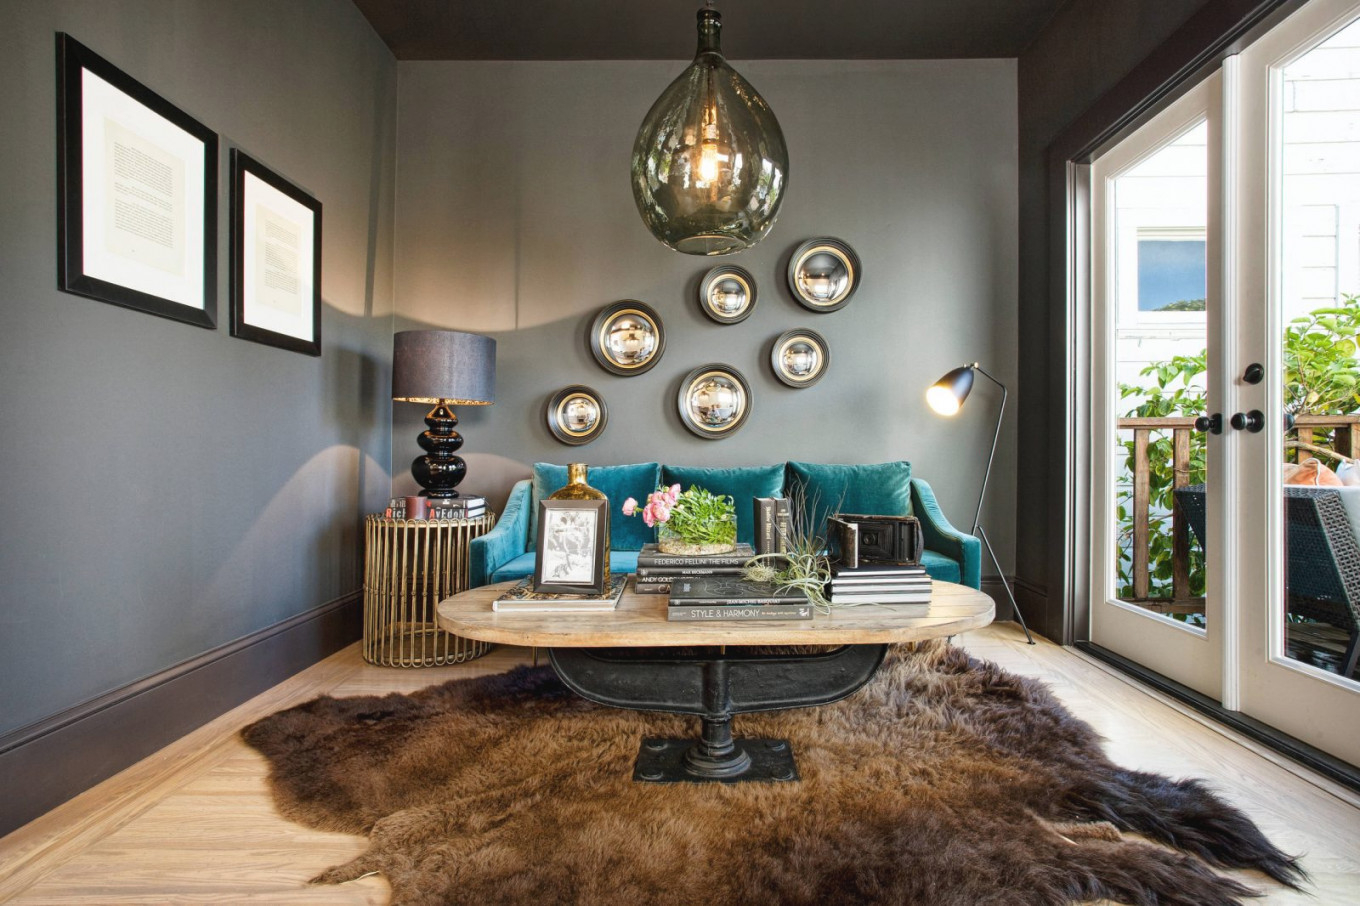 19 Most Interesting Grey And Teal Living Room Ideas To Get intended for Beautiful Gallery Gray And Teal Living Room